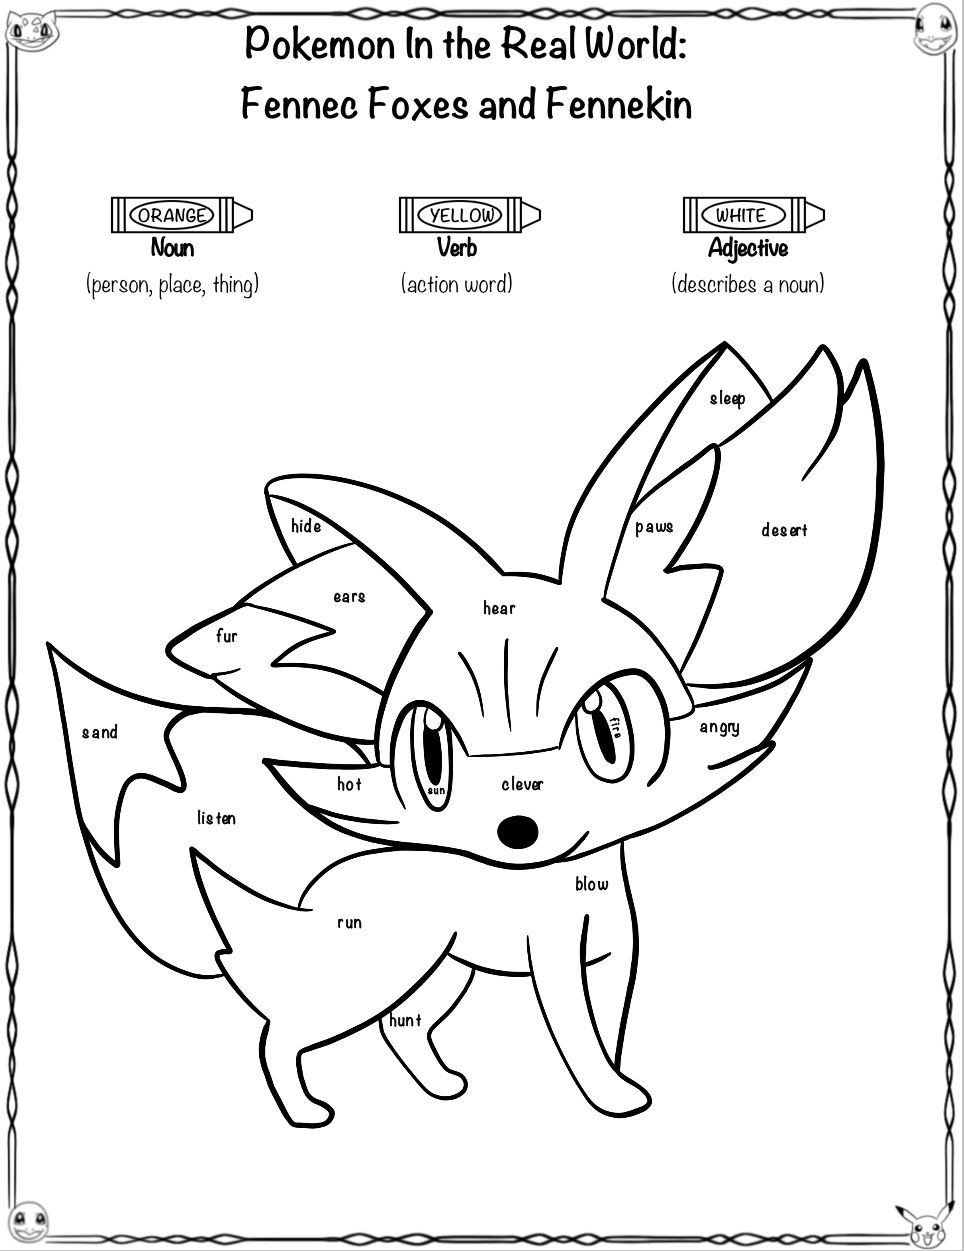 Pokémon Close Read and Worksheets/Activities: Fennec Foxes